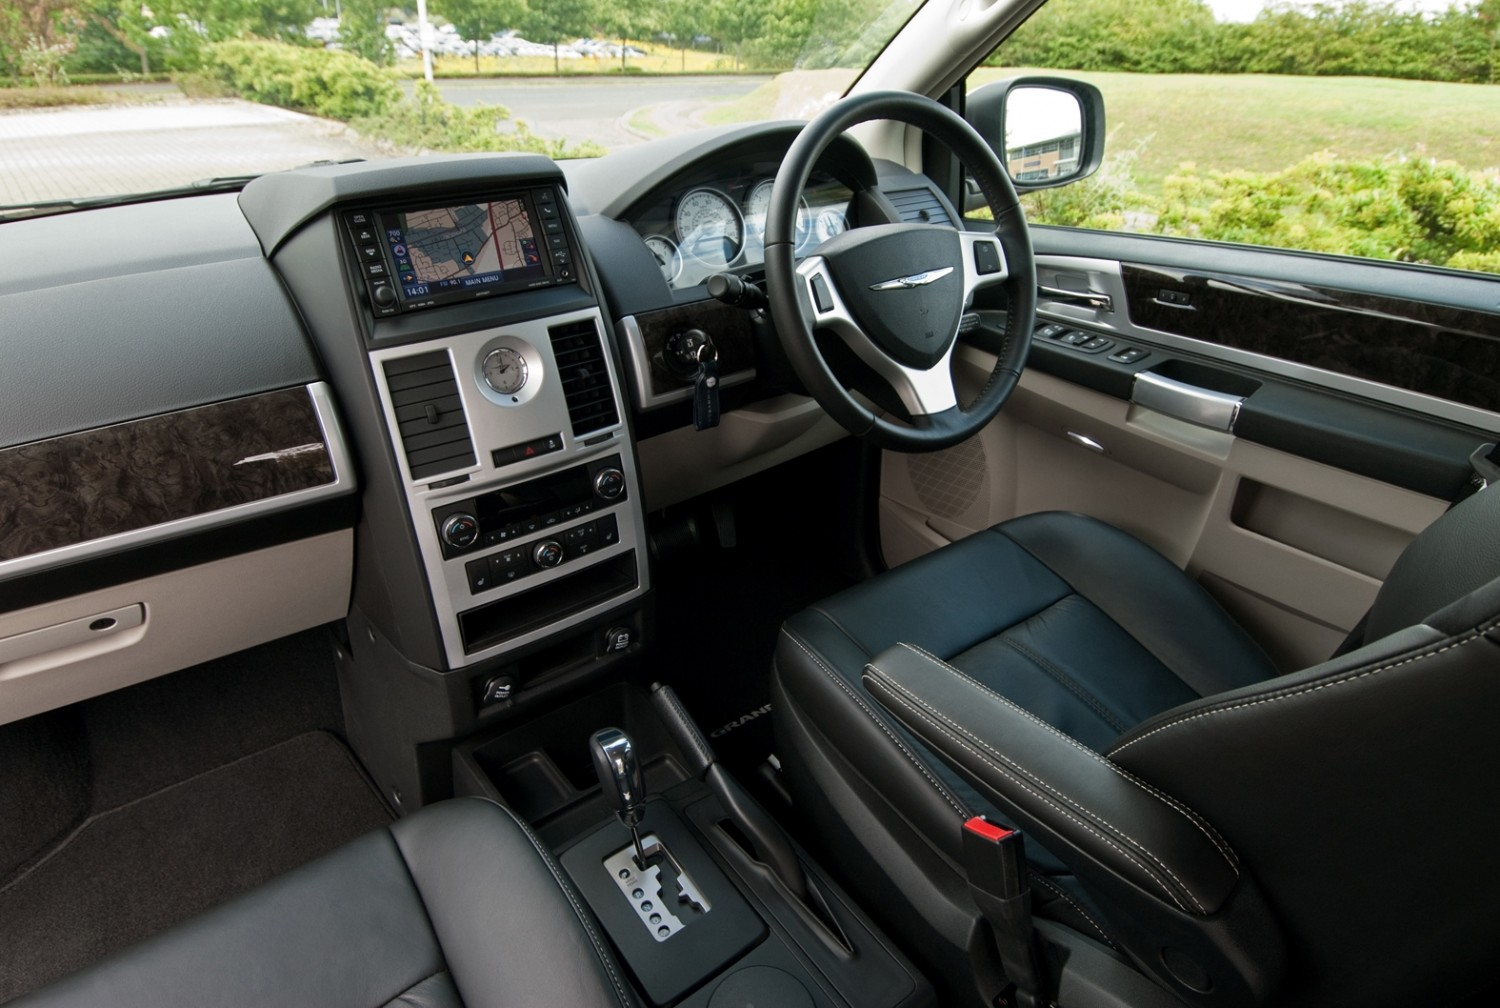 chrysler grand voyager used car review eurekar. Black Bedroom Furniture Sets. Home Design Ideas